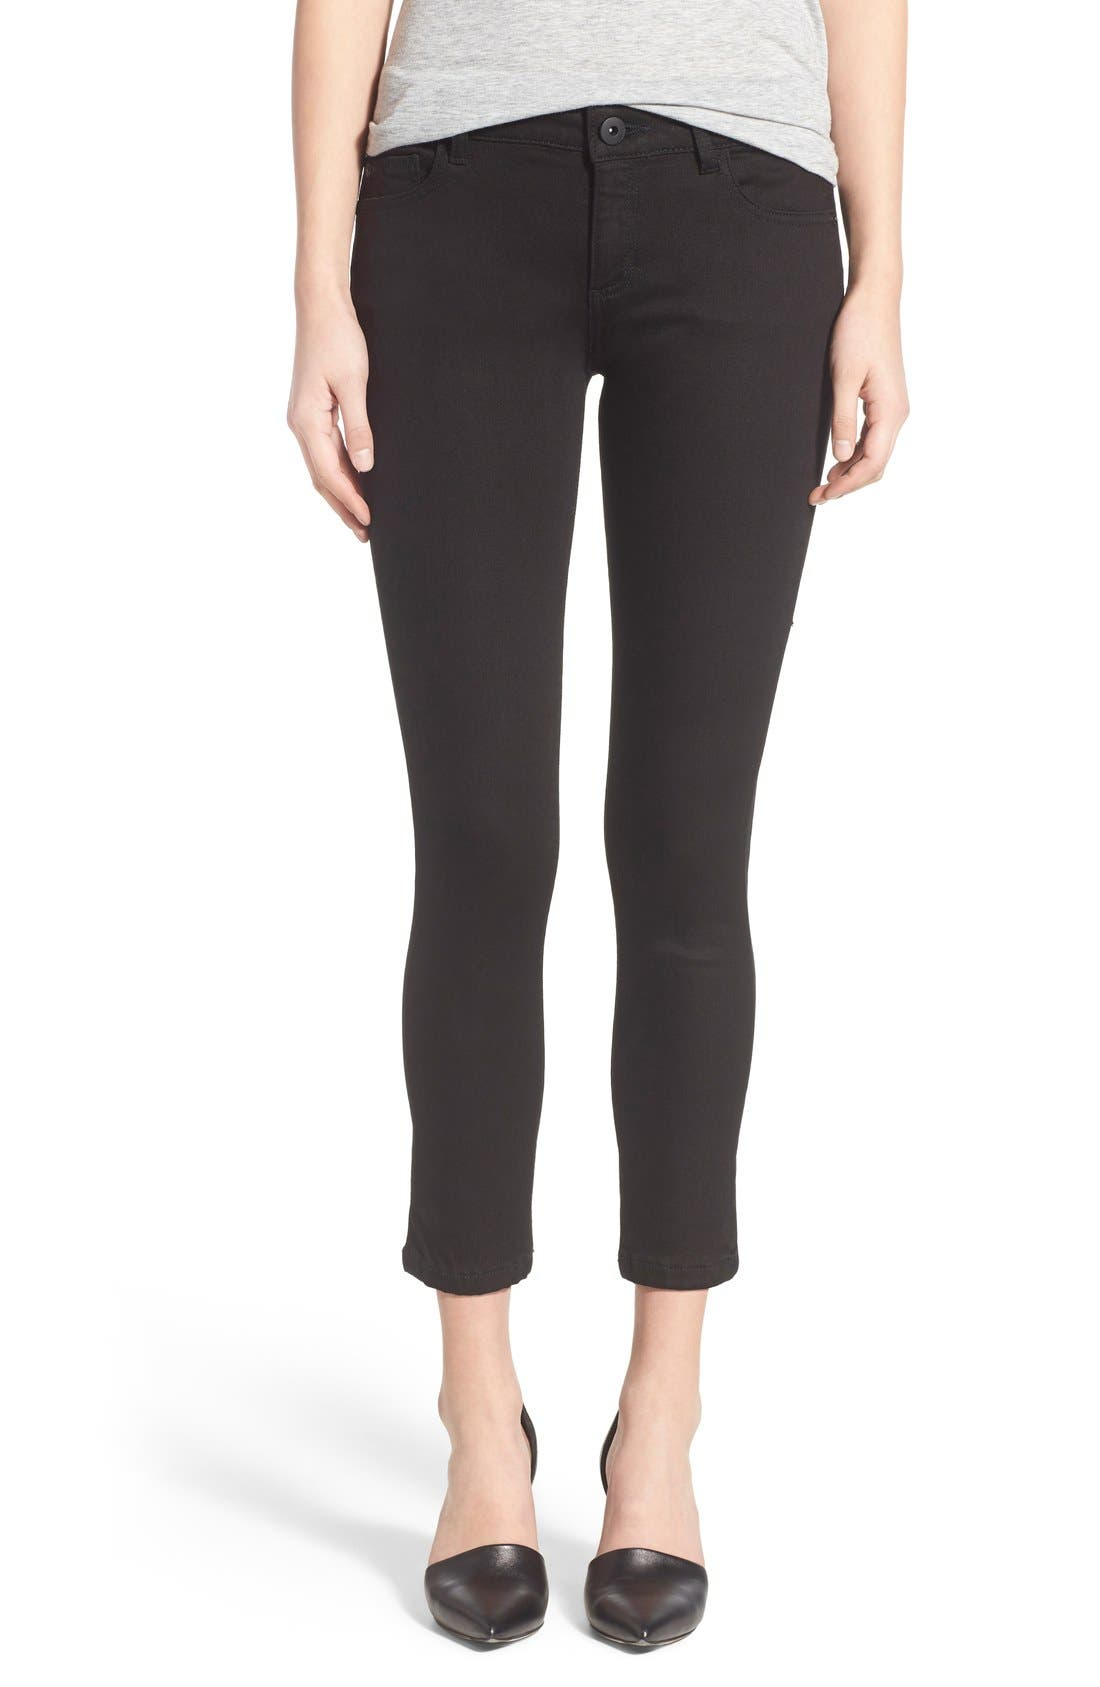 Alternate Image 1 Selected - DL1961 'Florence' Instasculpt Crop Skinny Jeans (Hail)